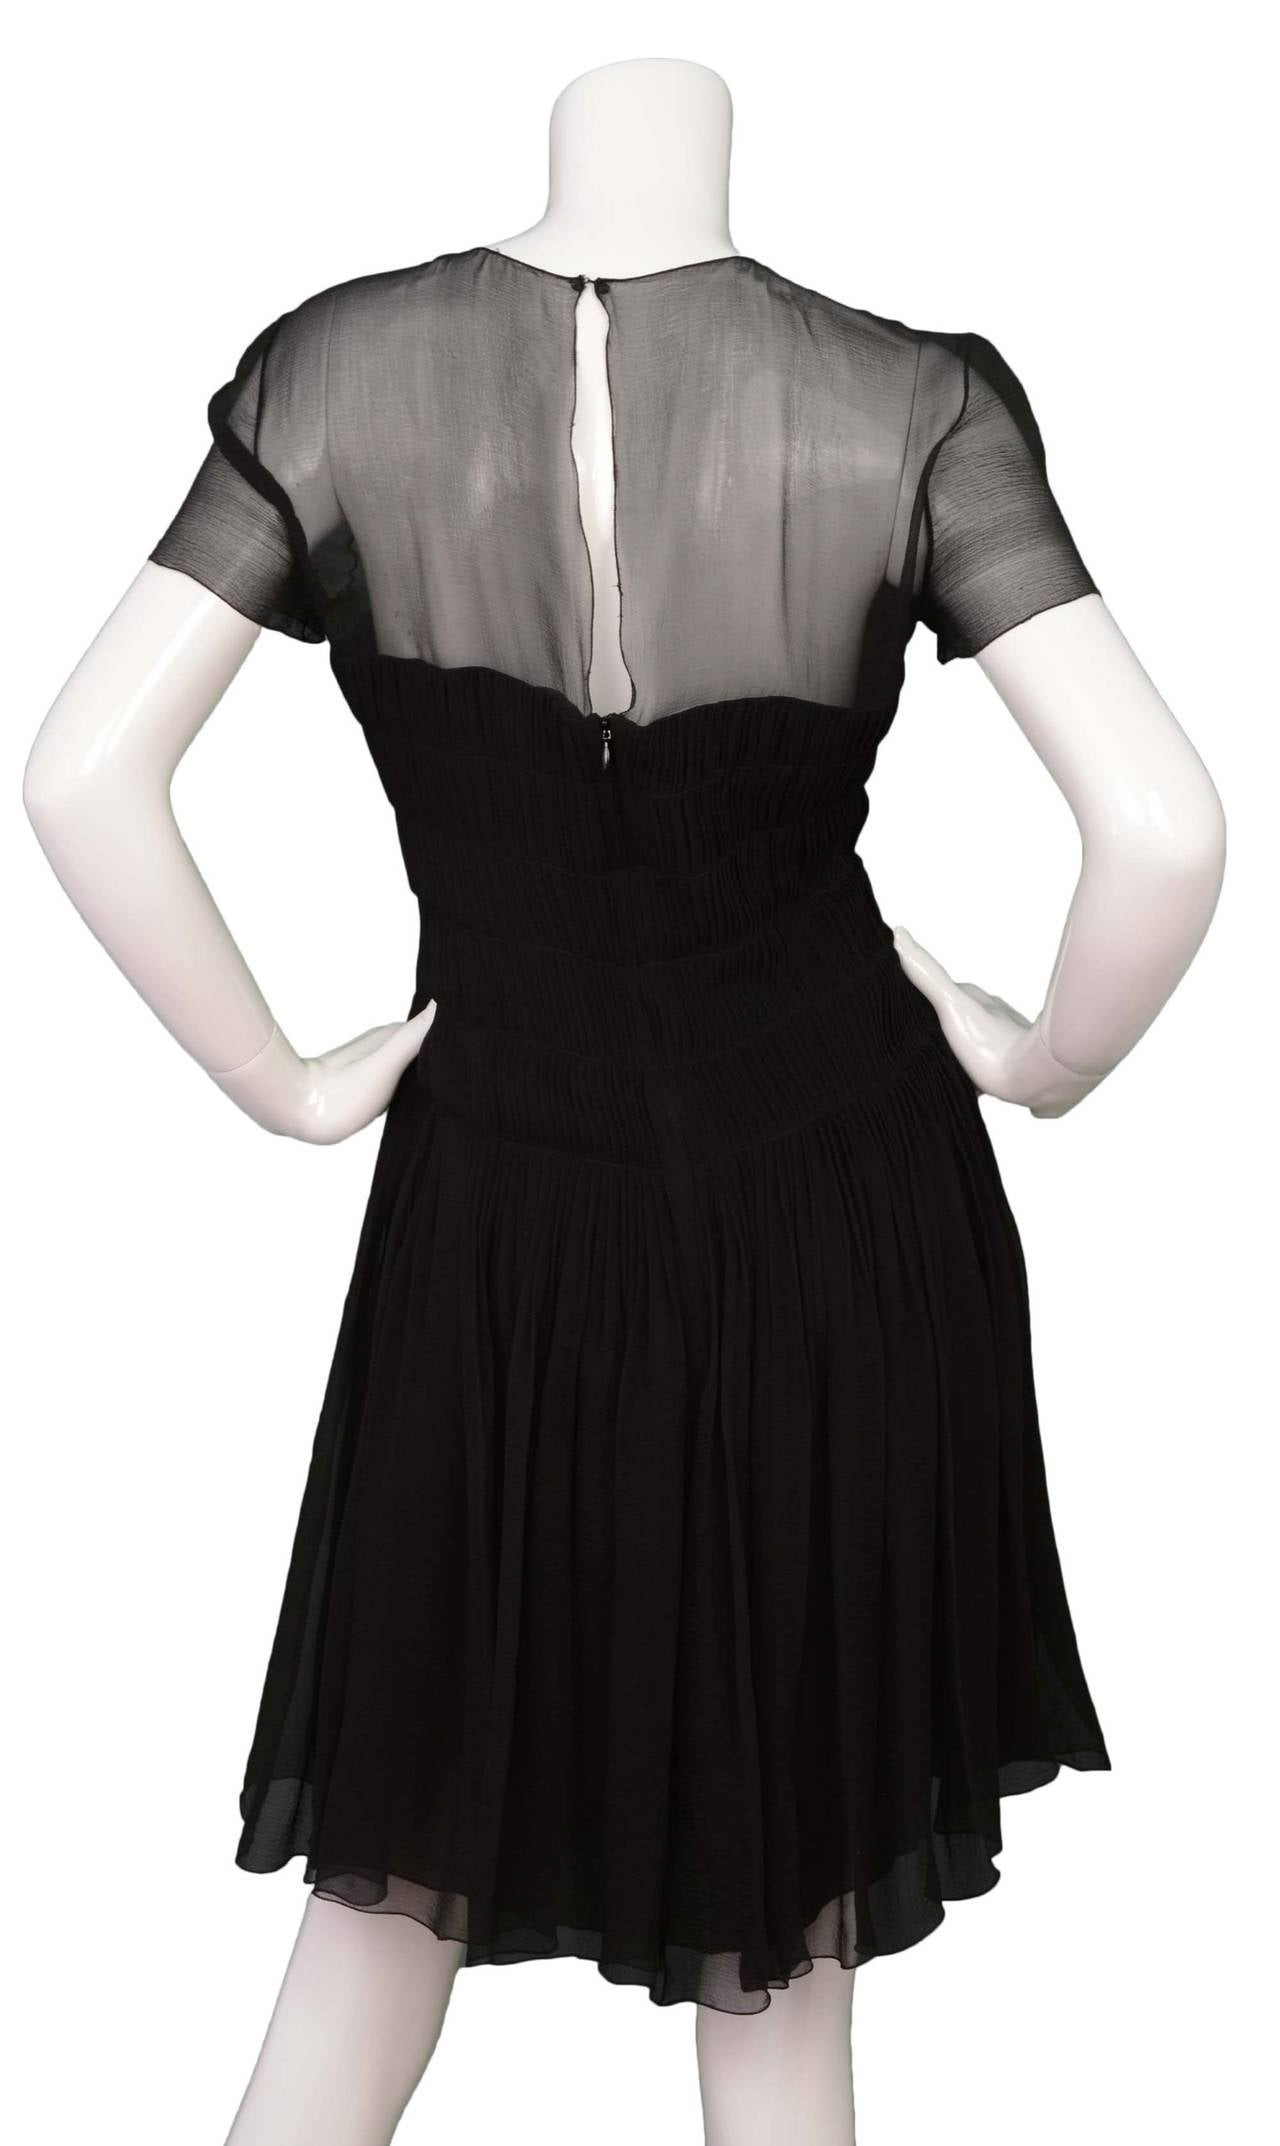 CHANEL Black Silk Short Sleeve Pleated Dress sz 42 3